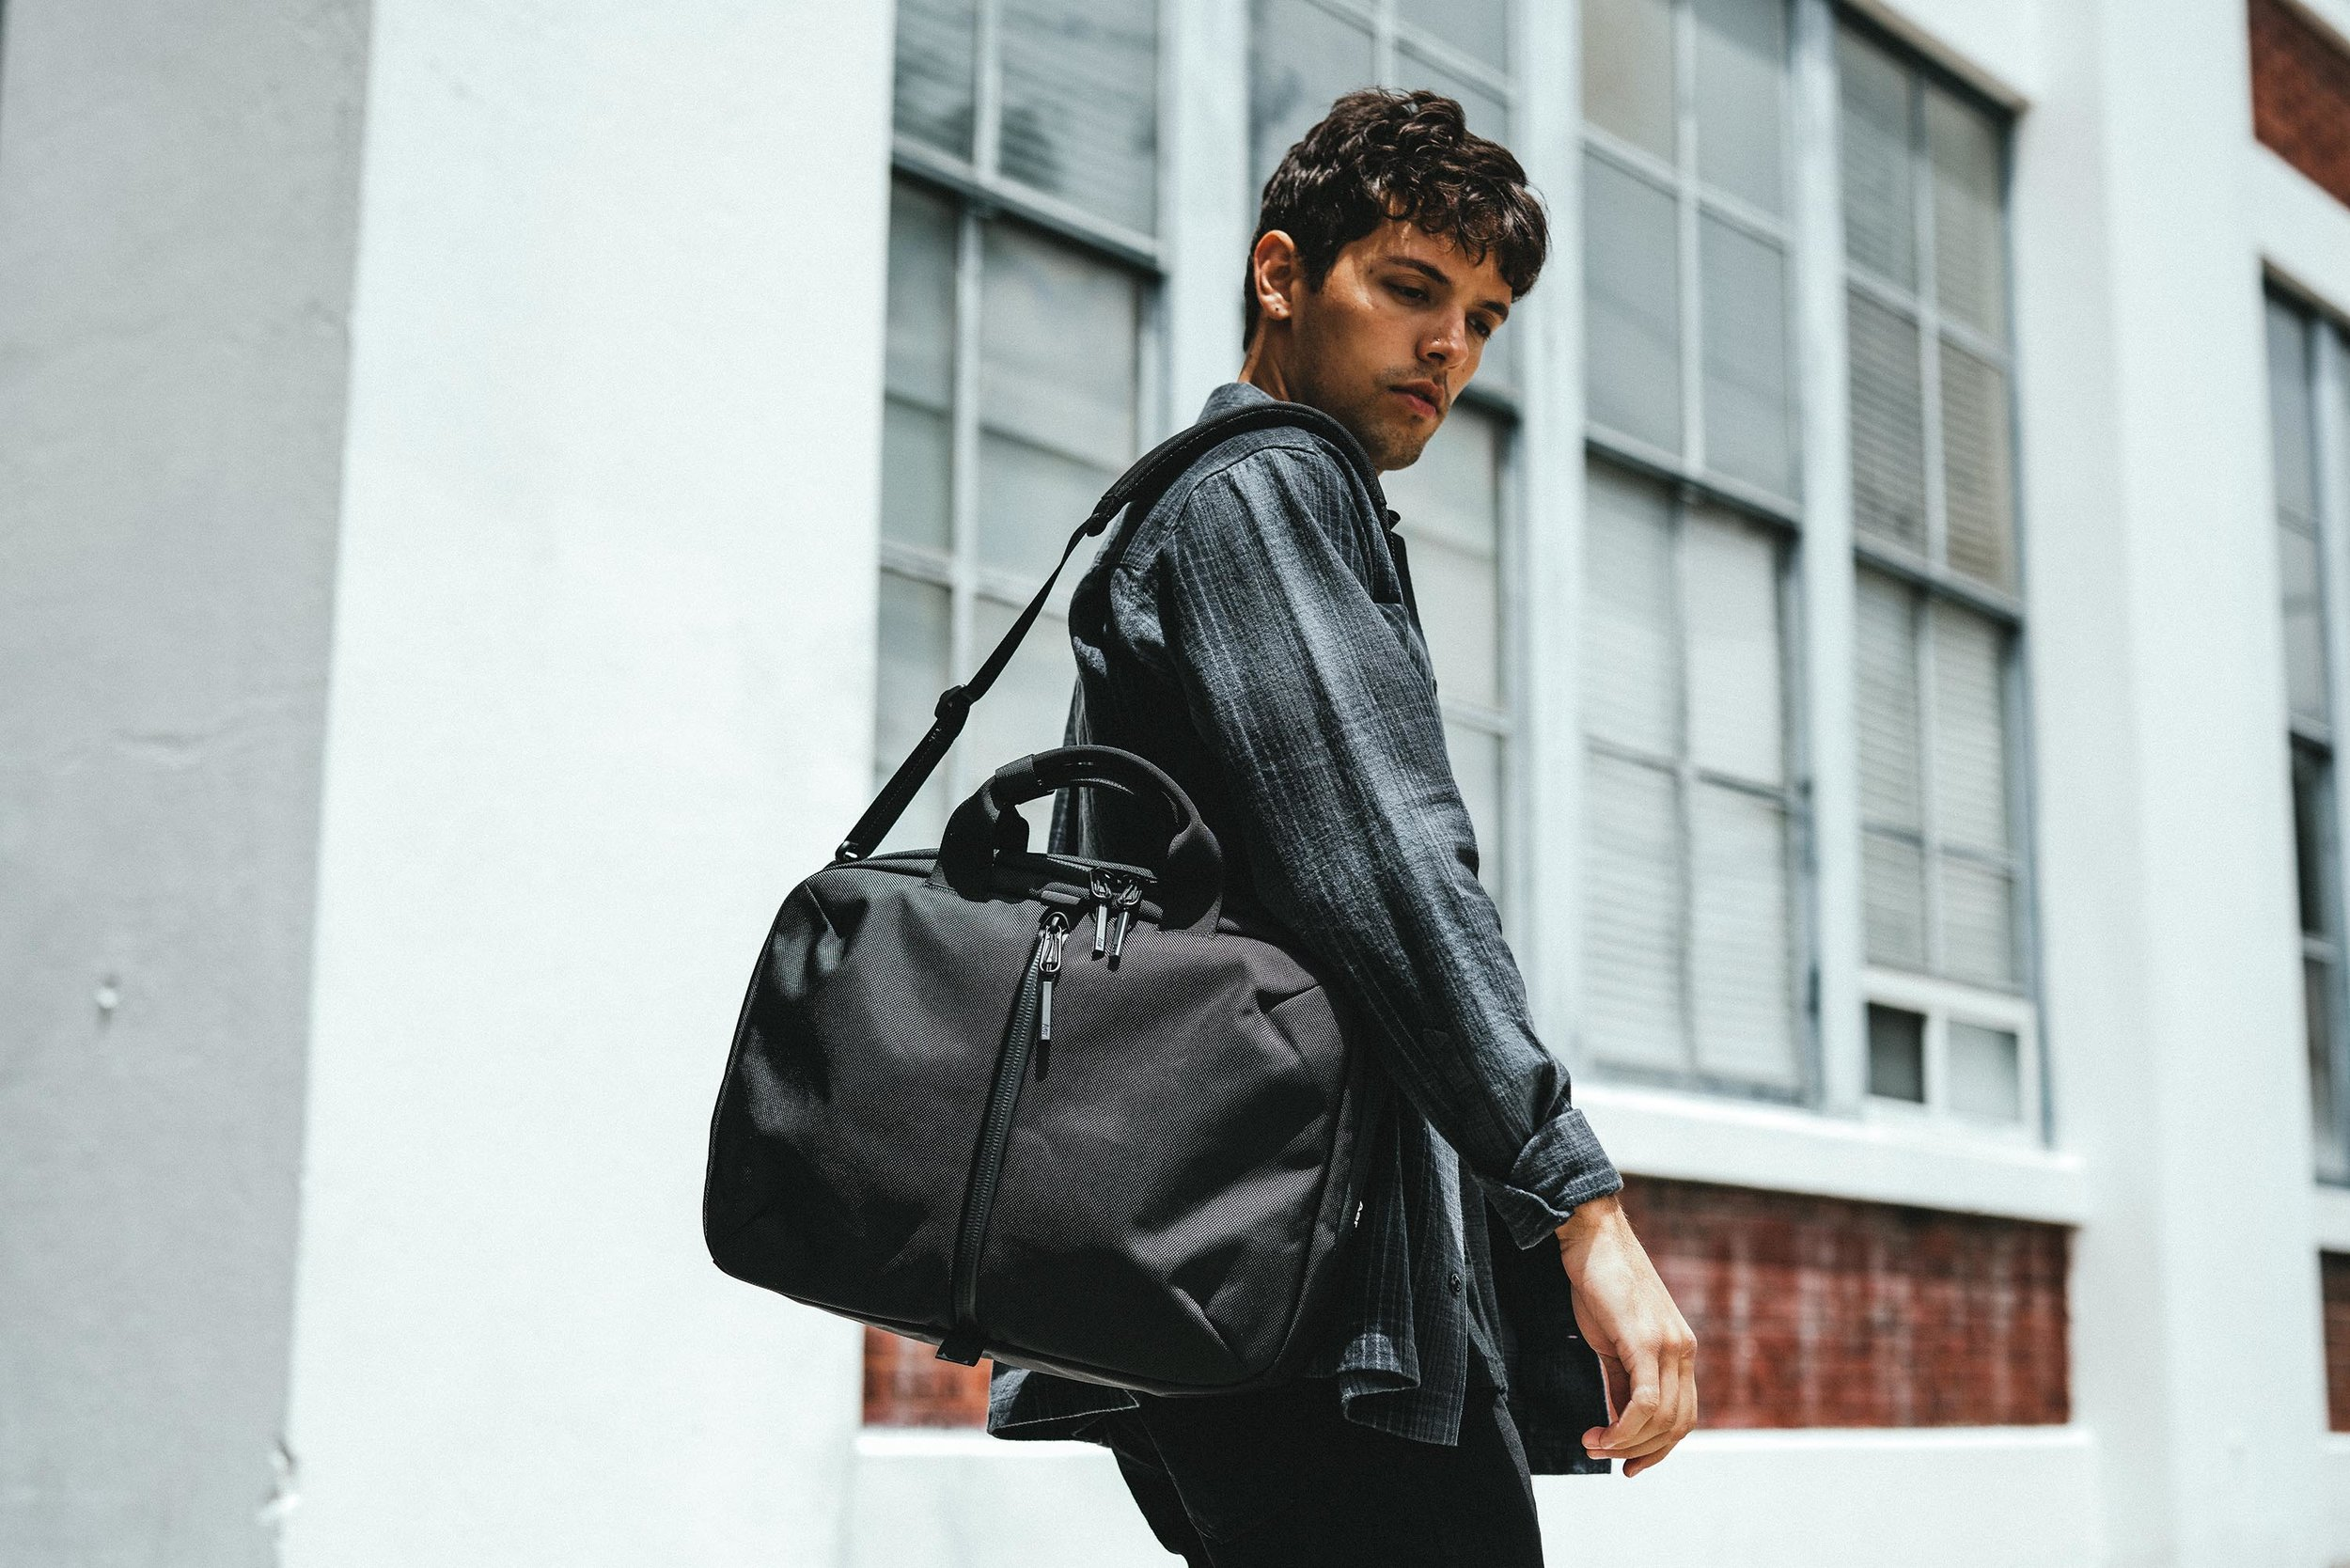 The 2-Way Brief is a modern take on the classic briefcase.